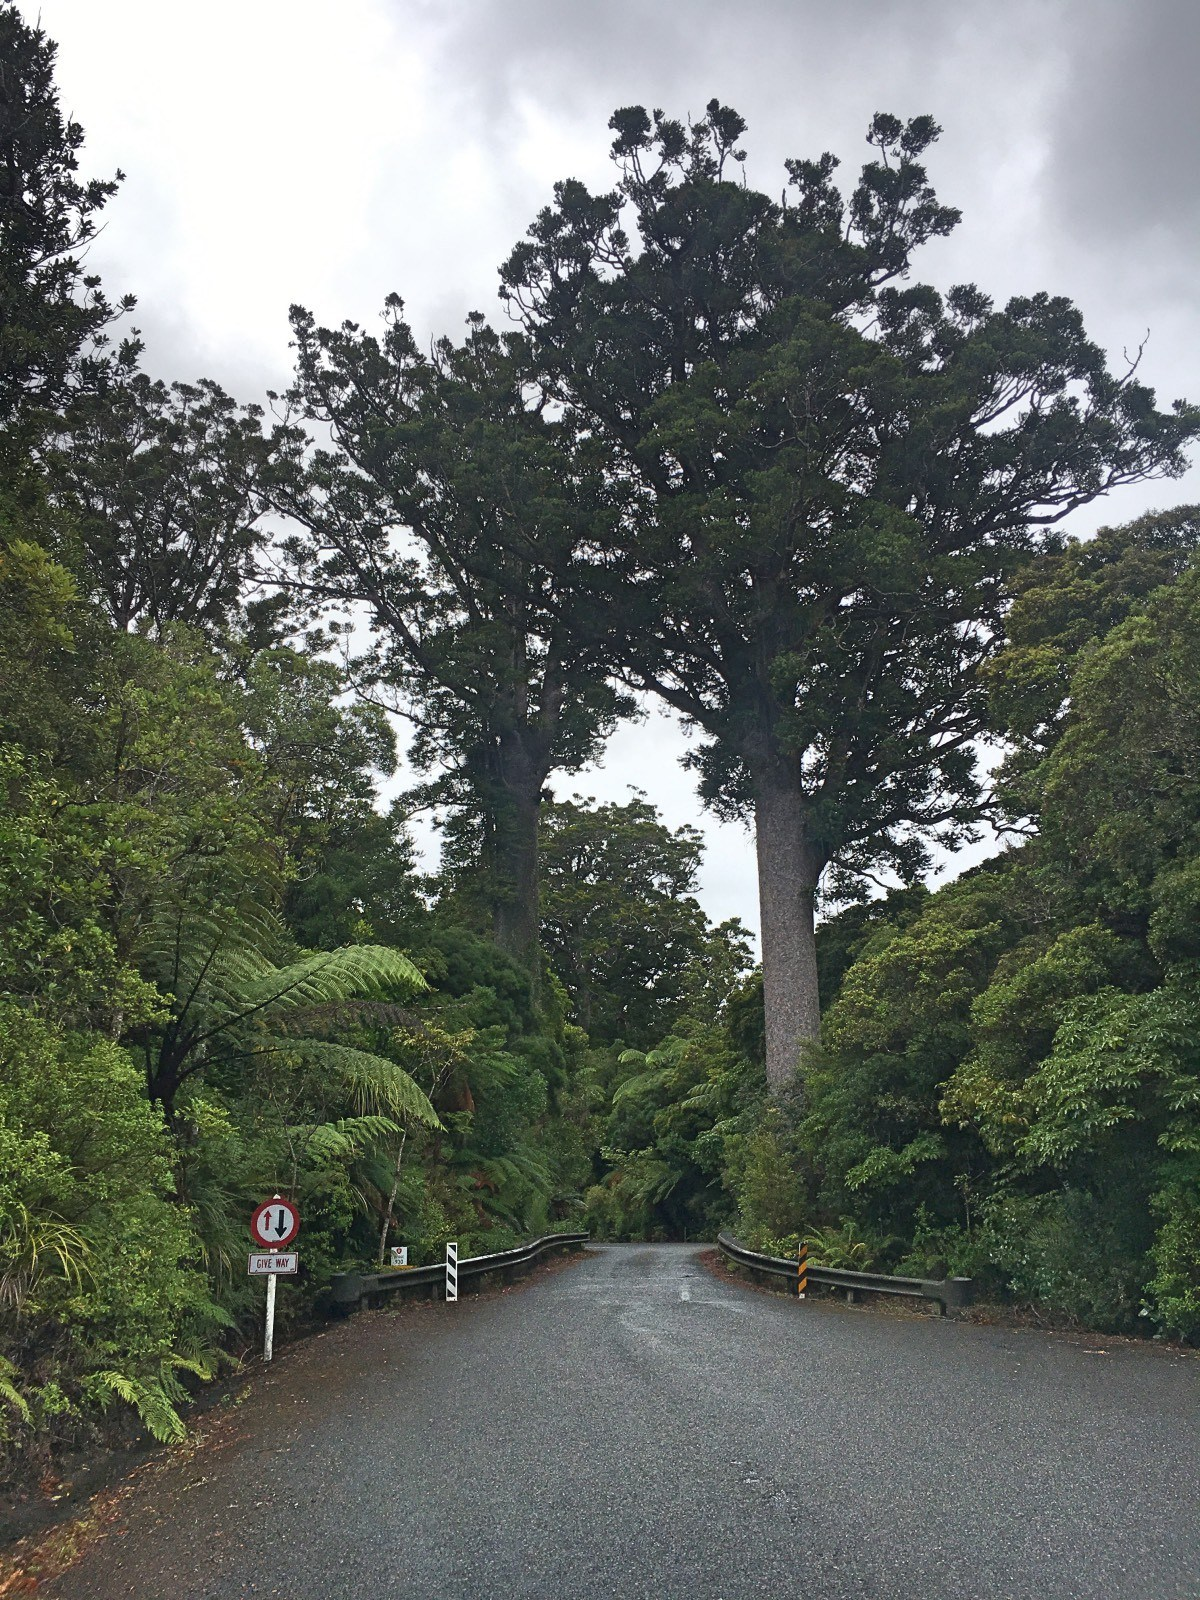 The road makes way for trees in the stunning Waipoua Forest